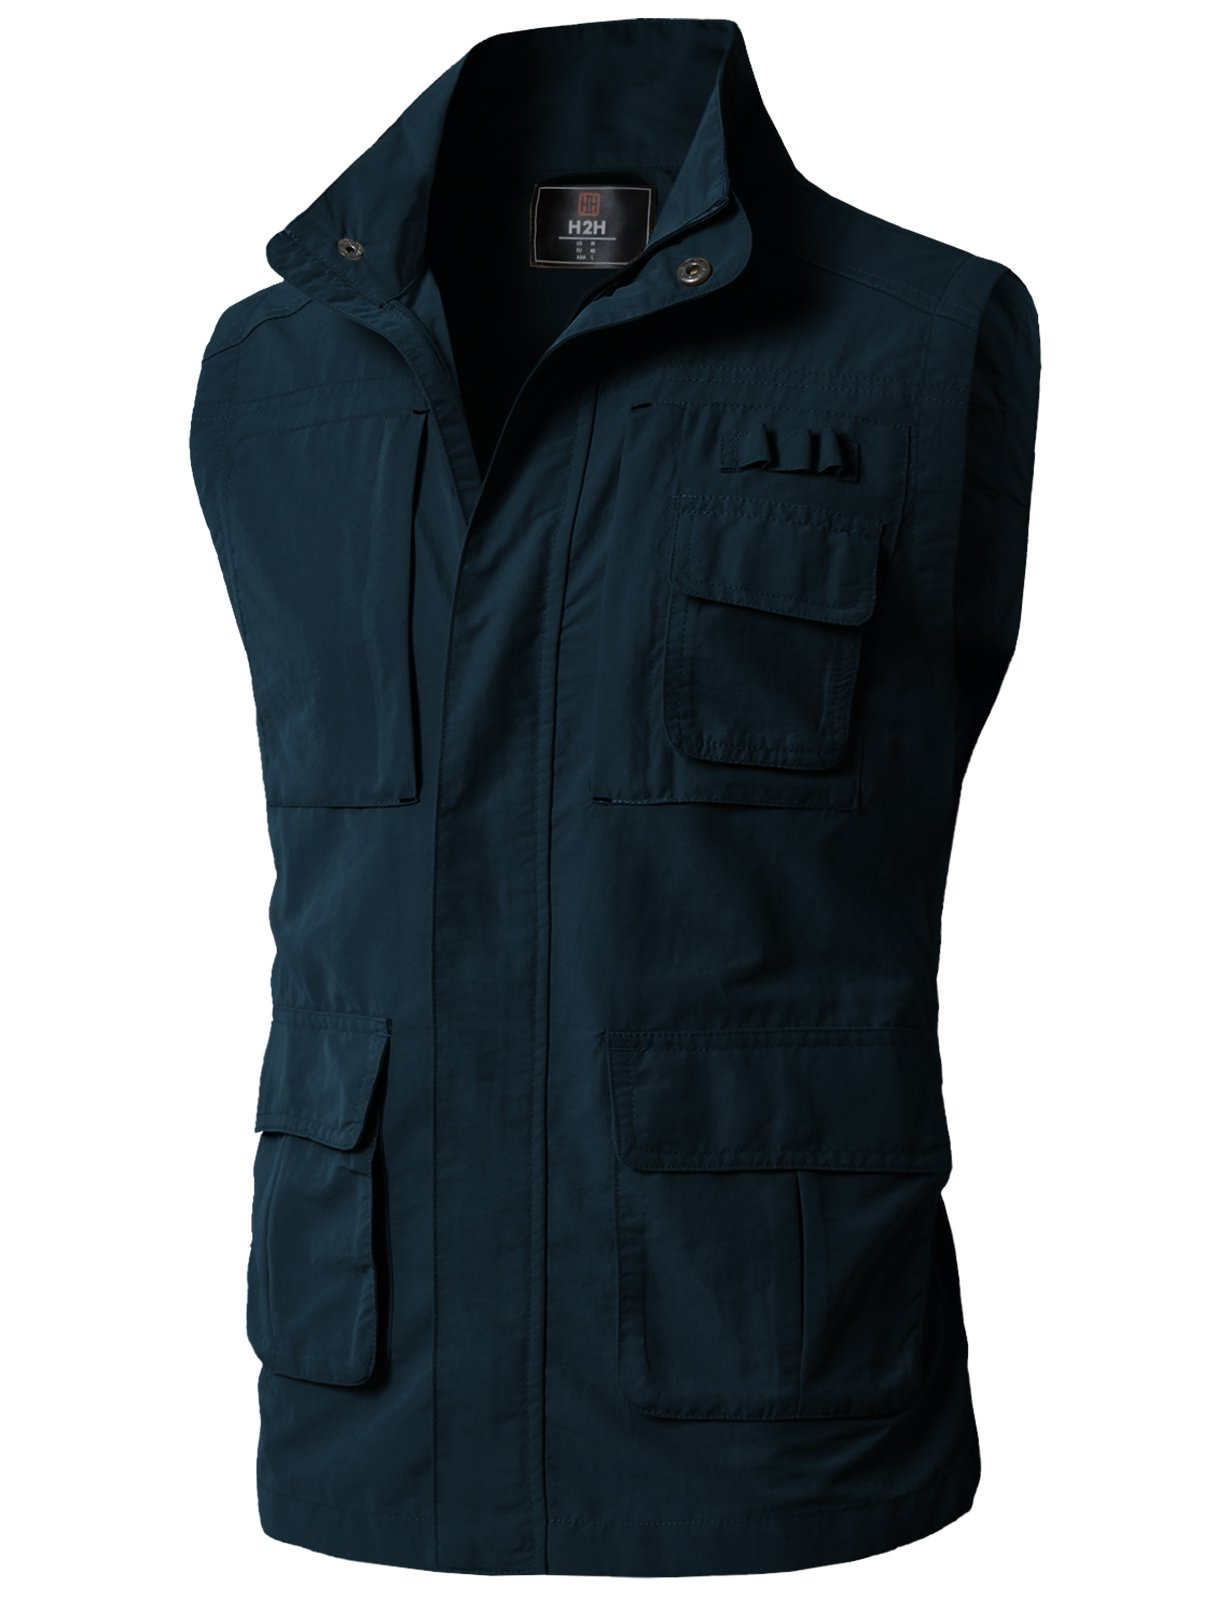 H2H Men's Classic Outwear Down Vest Lightweight Stand Collar Quilted Down Coat Navy US XL/Asia 2XL (KMOV0152)